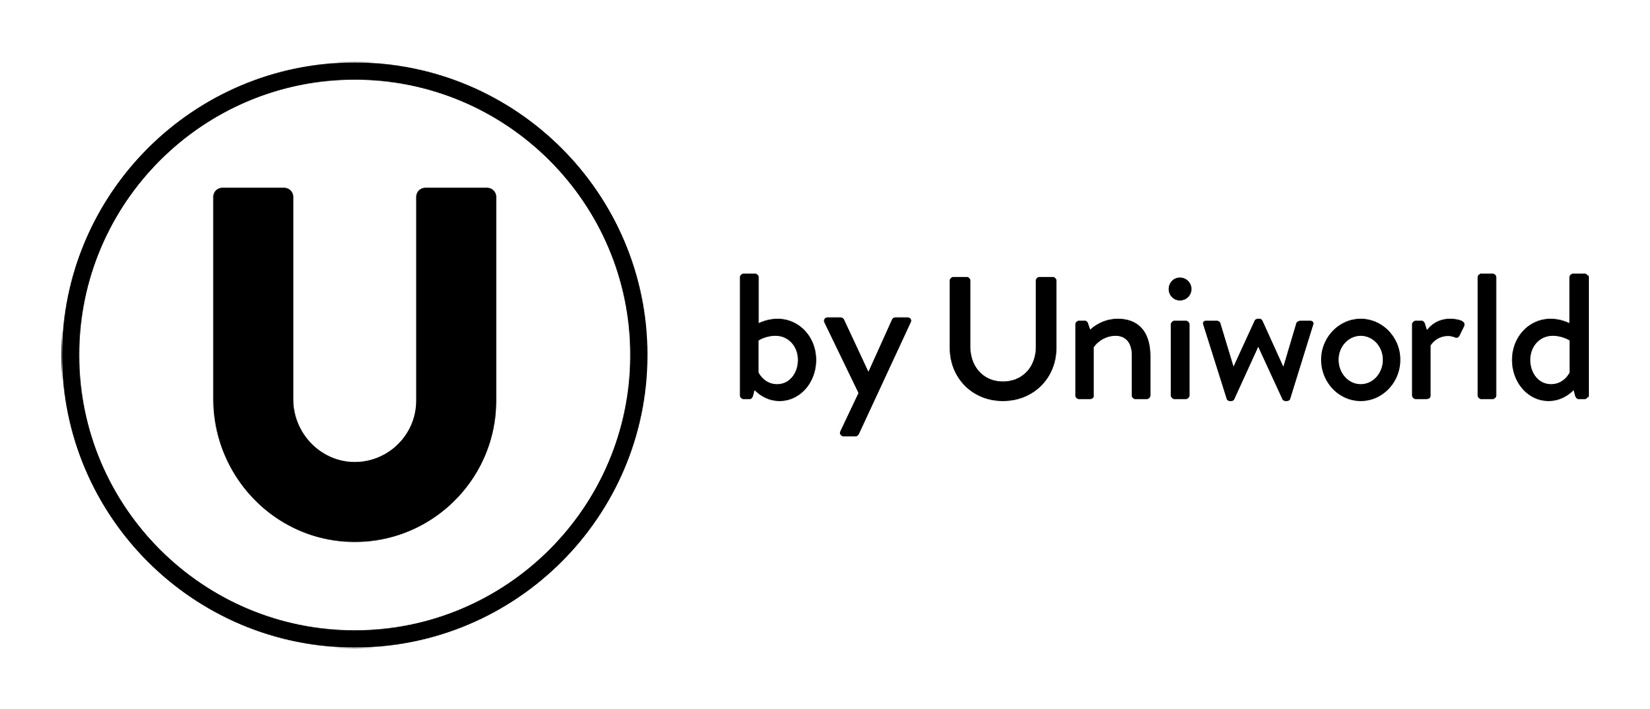 U by Uniworld logo (horizontal, transparent background)